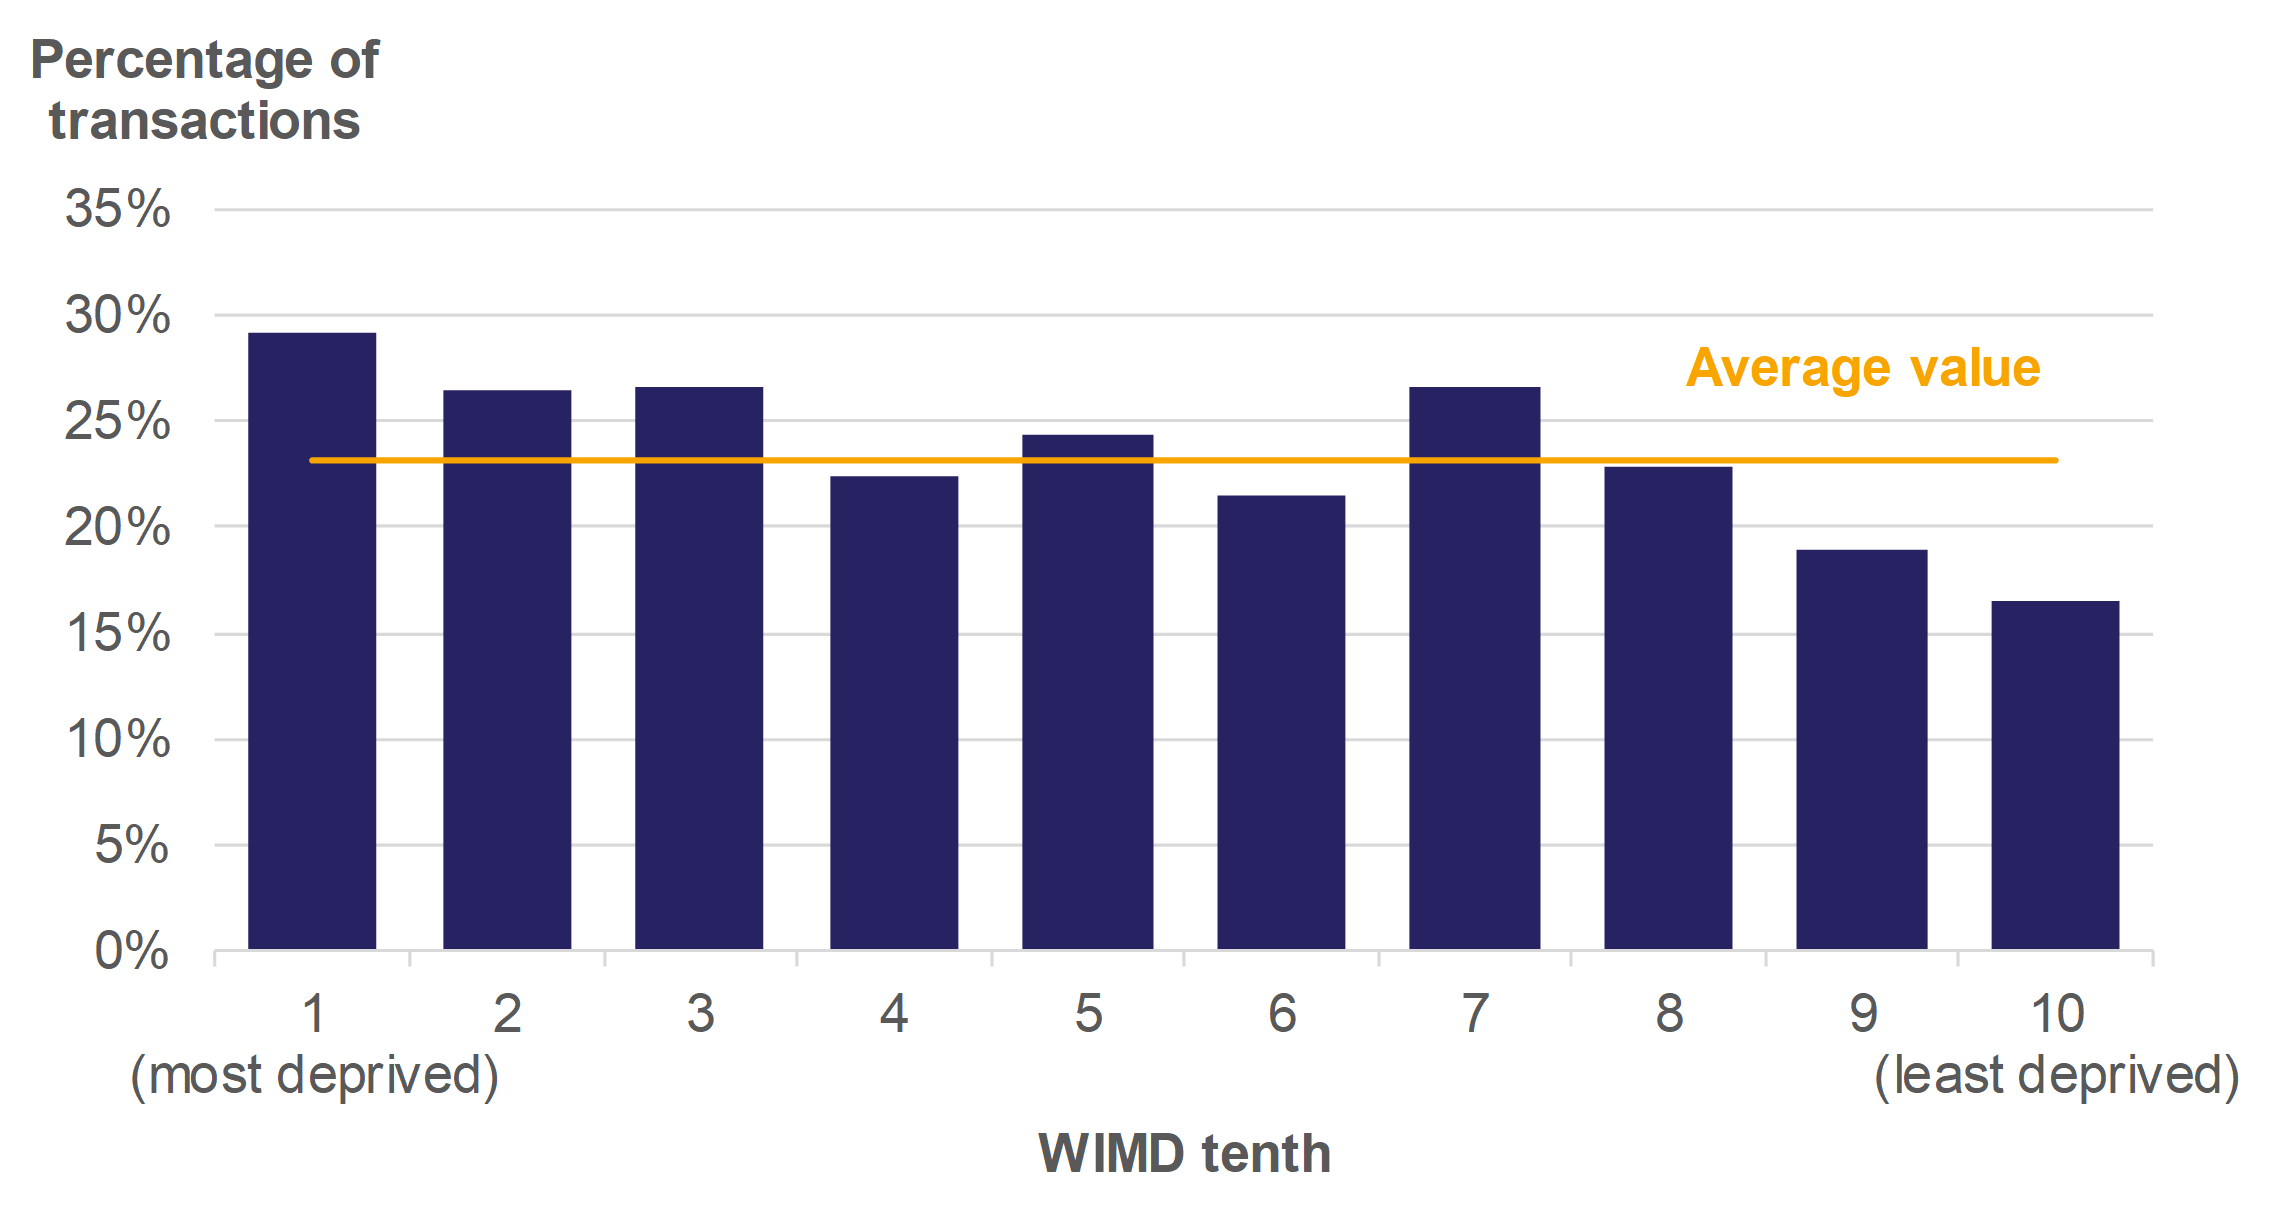 Figure 9.3 shows higher rate transactions as a percentage of all residential transactions, by WIMD tenth, for April 2018 to March 2019. An average value over all WIMD tenths is also presented.